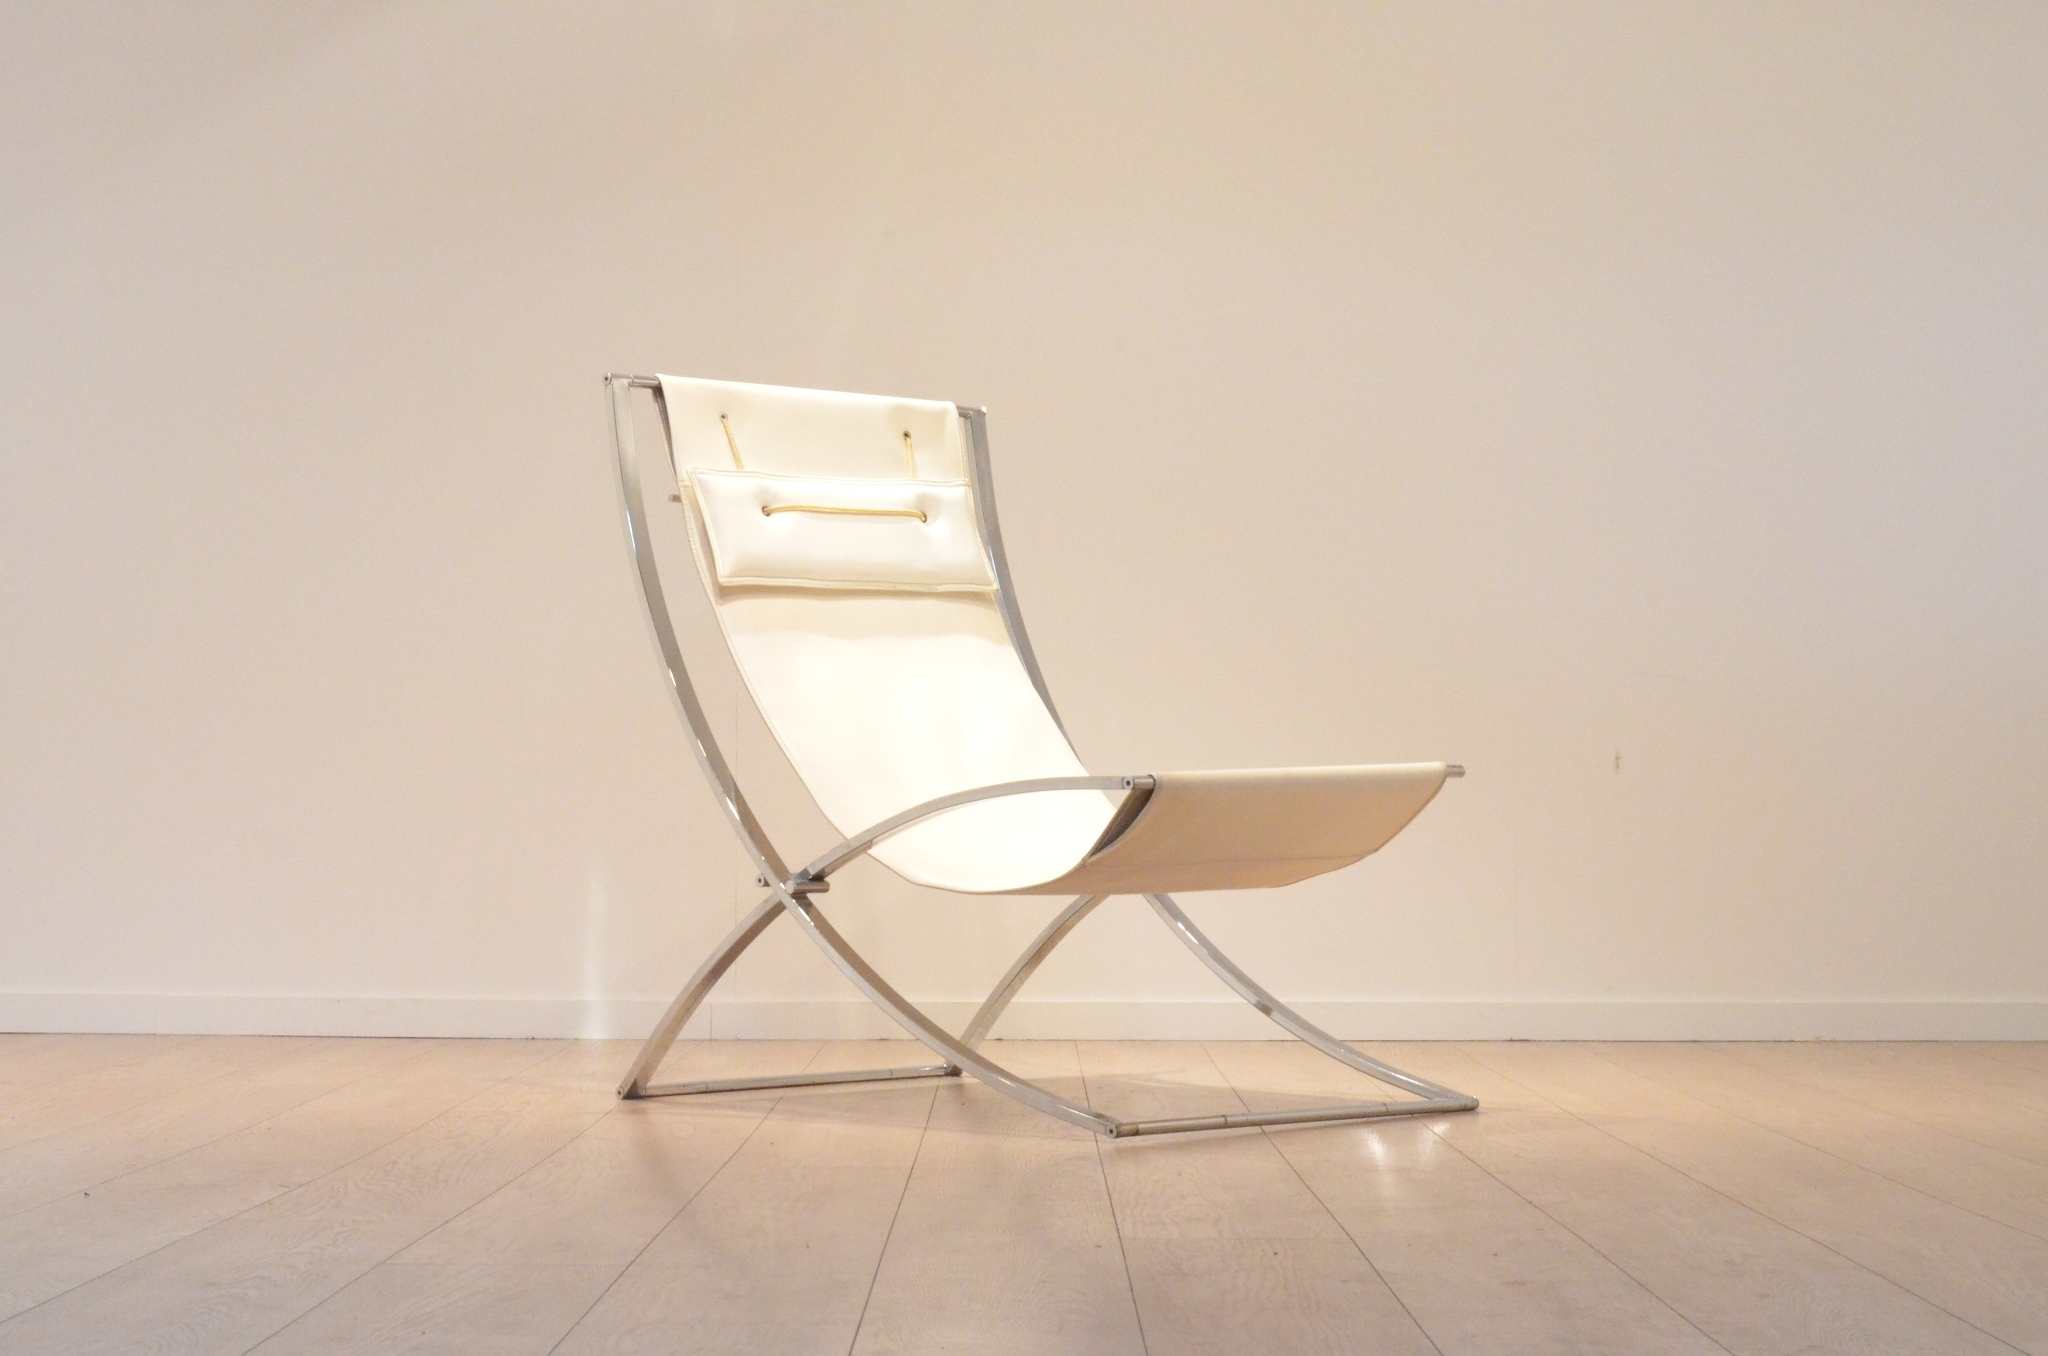 Minimalistic lounge chair - Marcello Cuneo - £790